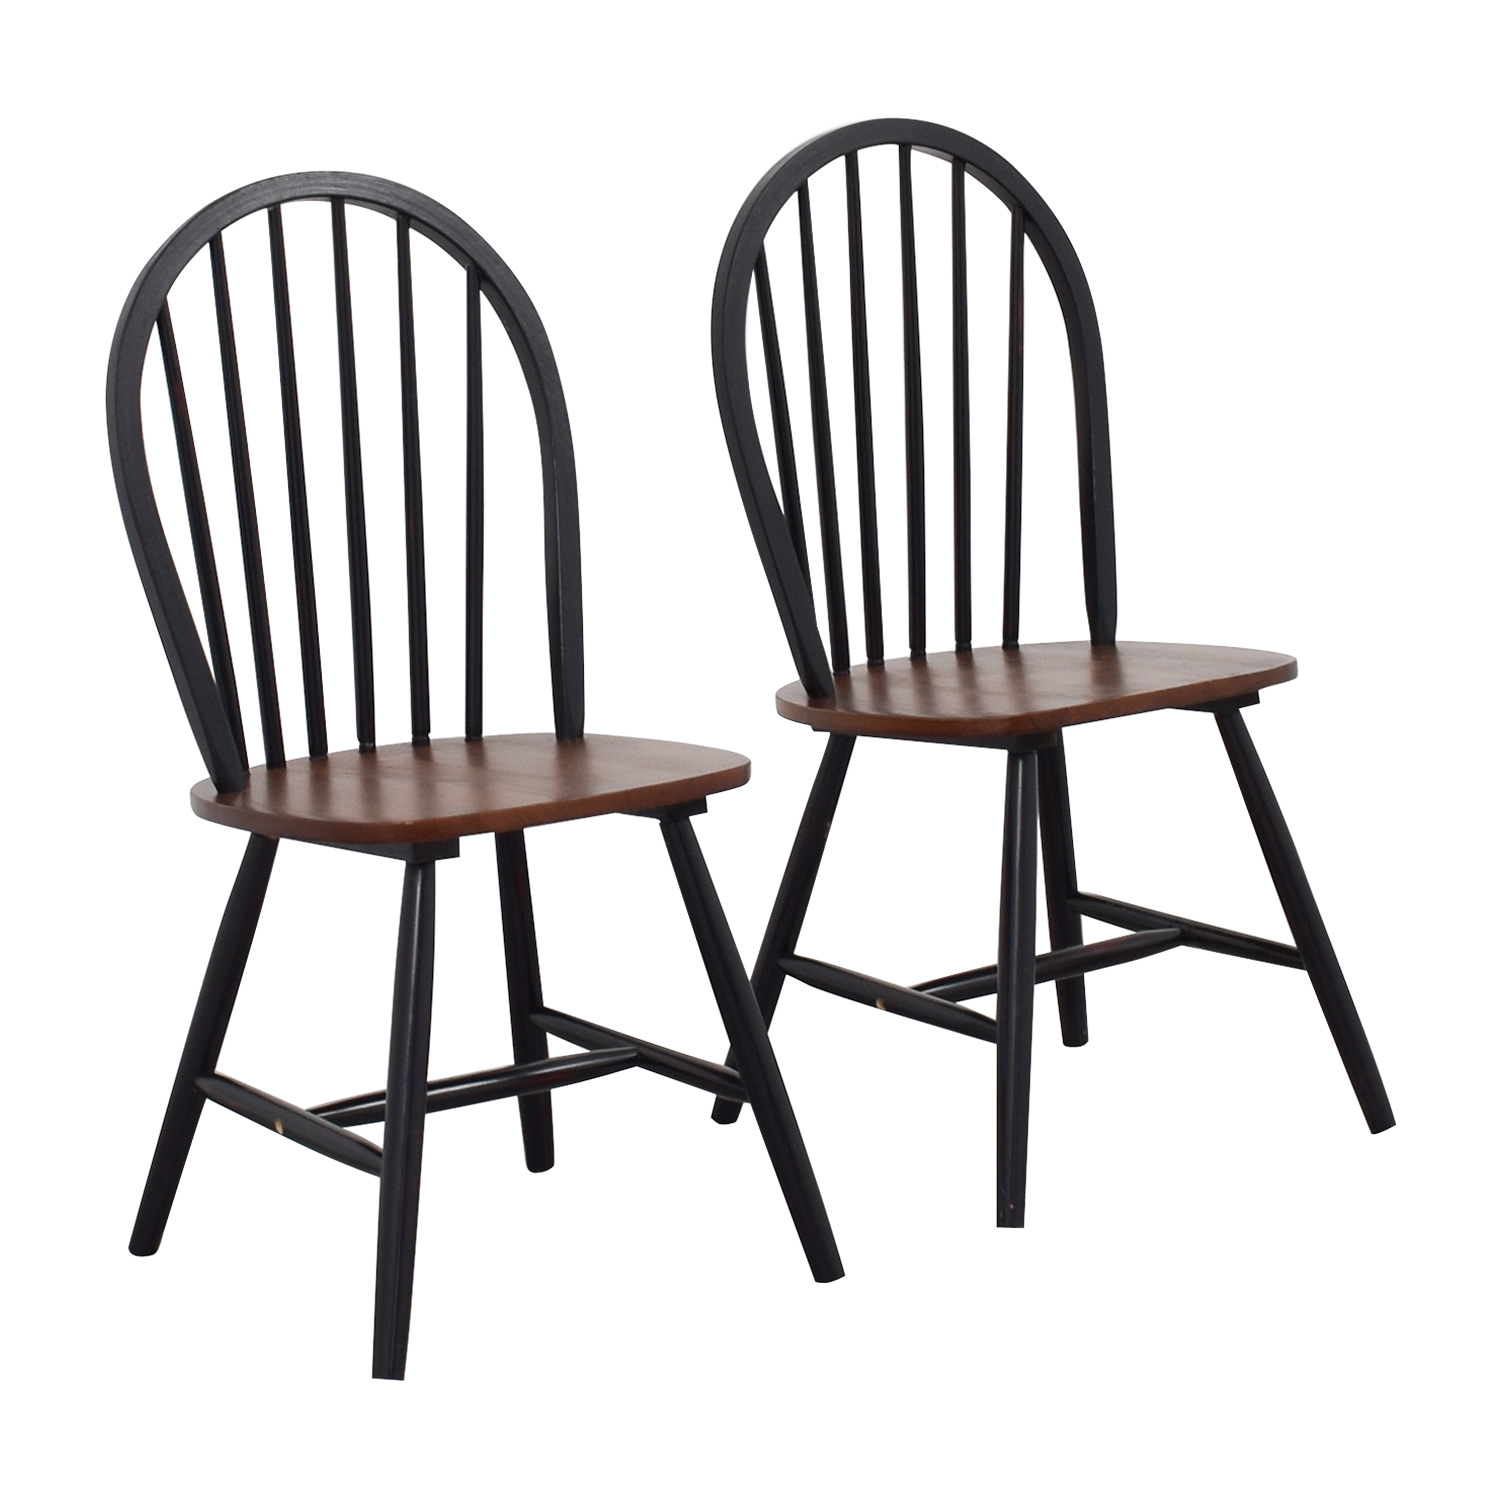 used restaurant chairs sturdy camping chair 83 off two tone wood dining